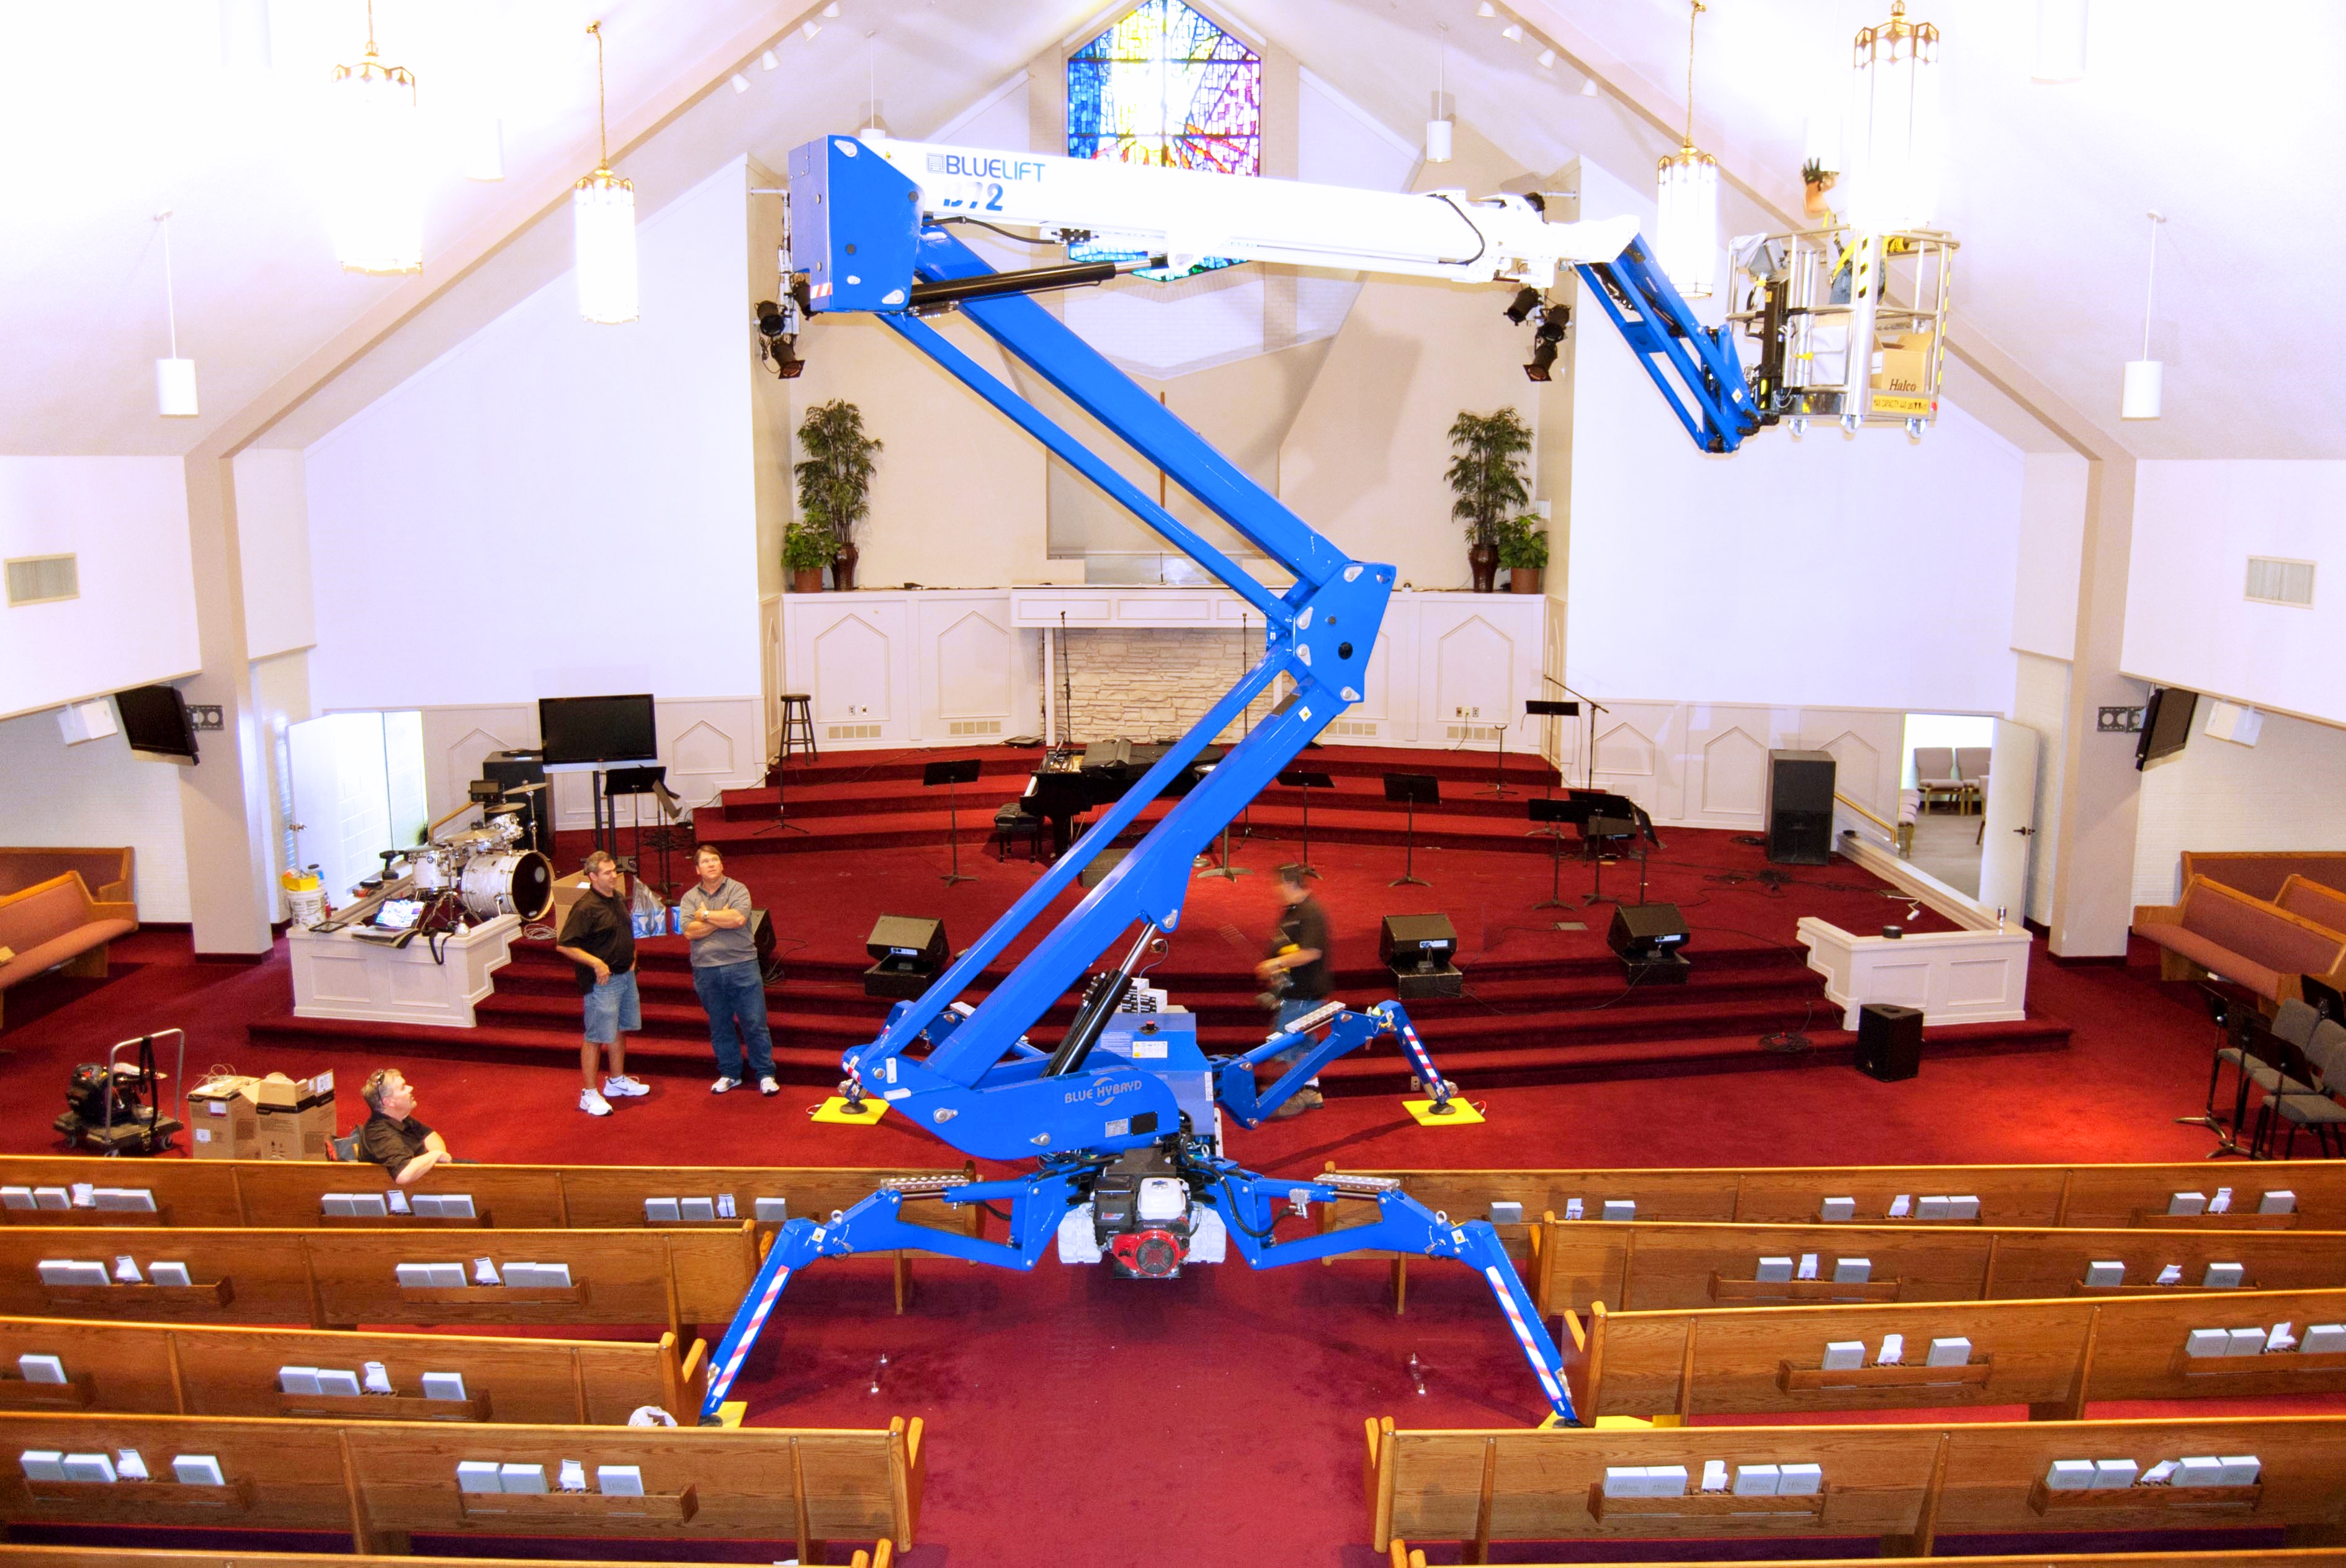 Reachmaster Aerial Lifts Bluelift B72 Compact Aerial Lift From Reachmaster